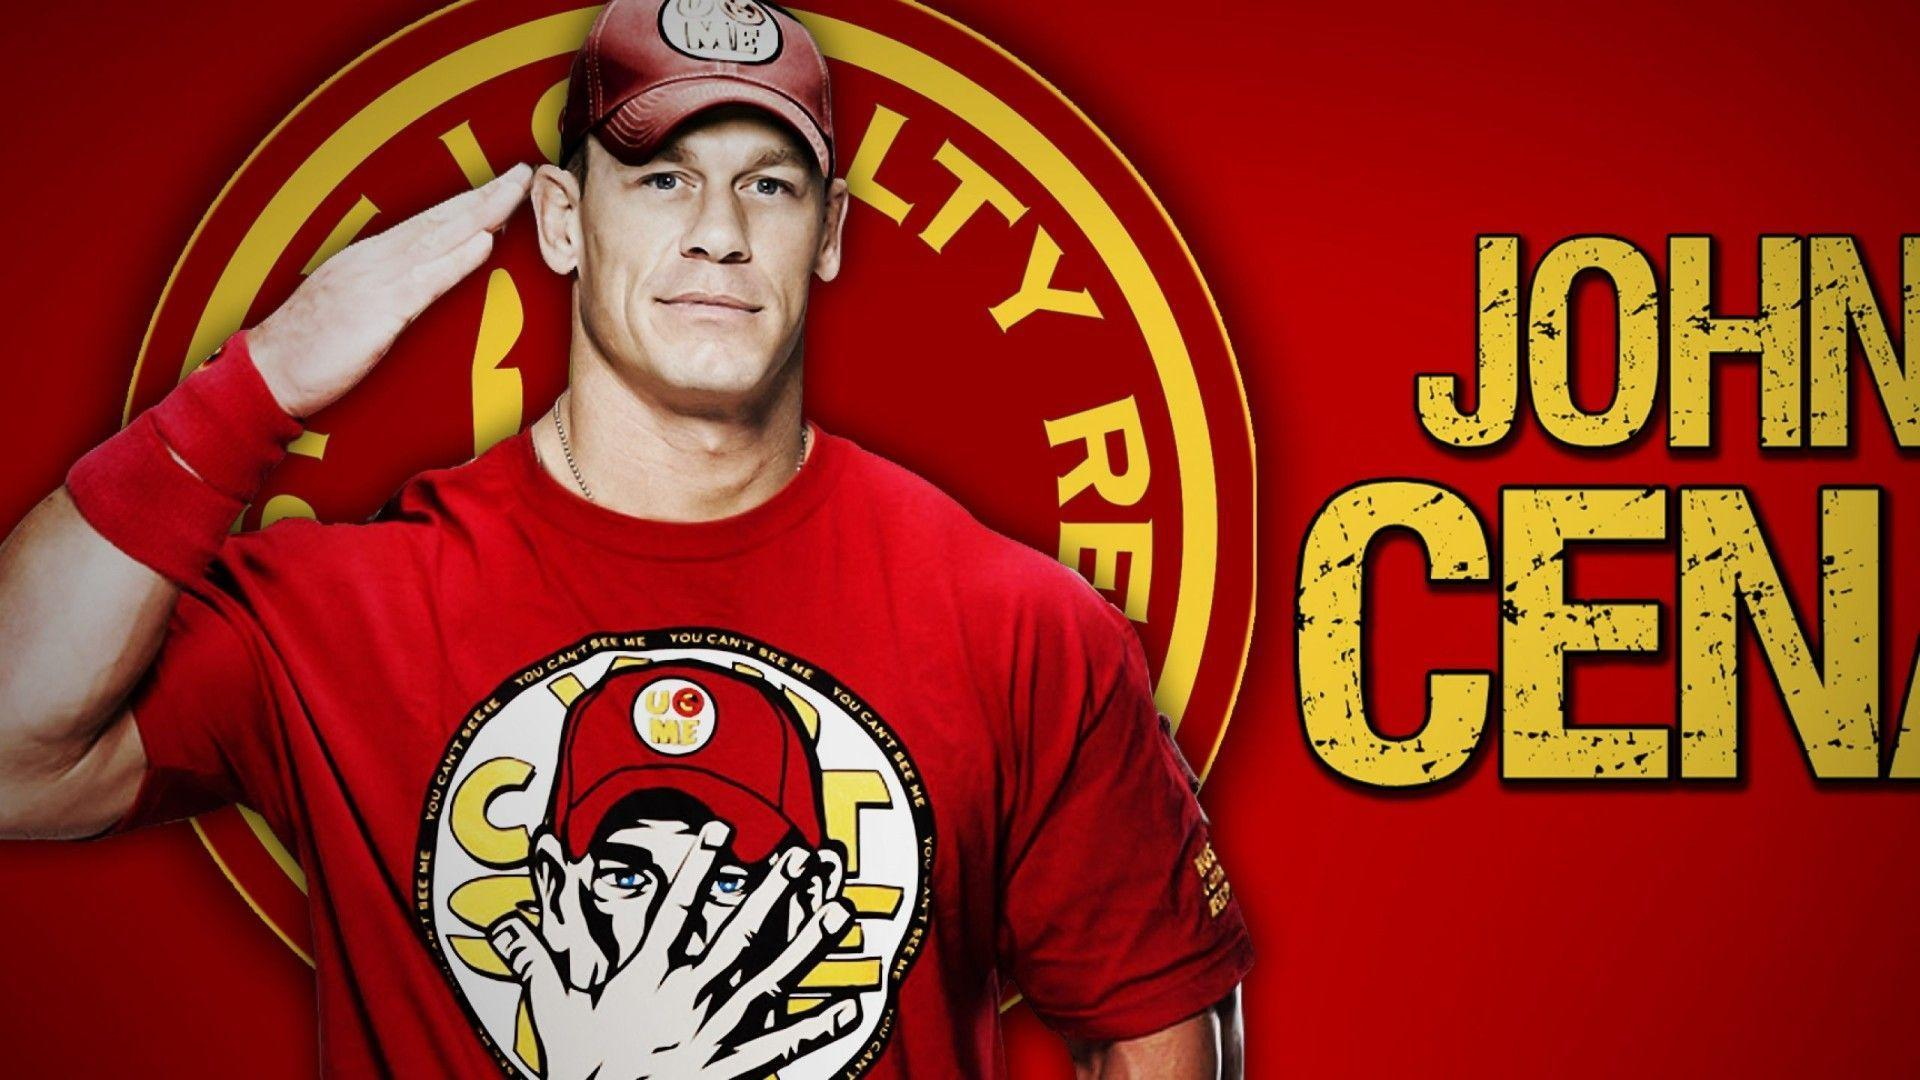 John Cena 2017 HD Wallpapers Wallpaper Cave